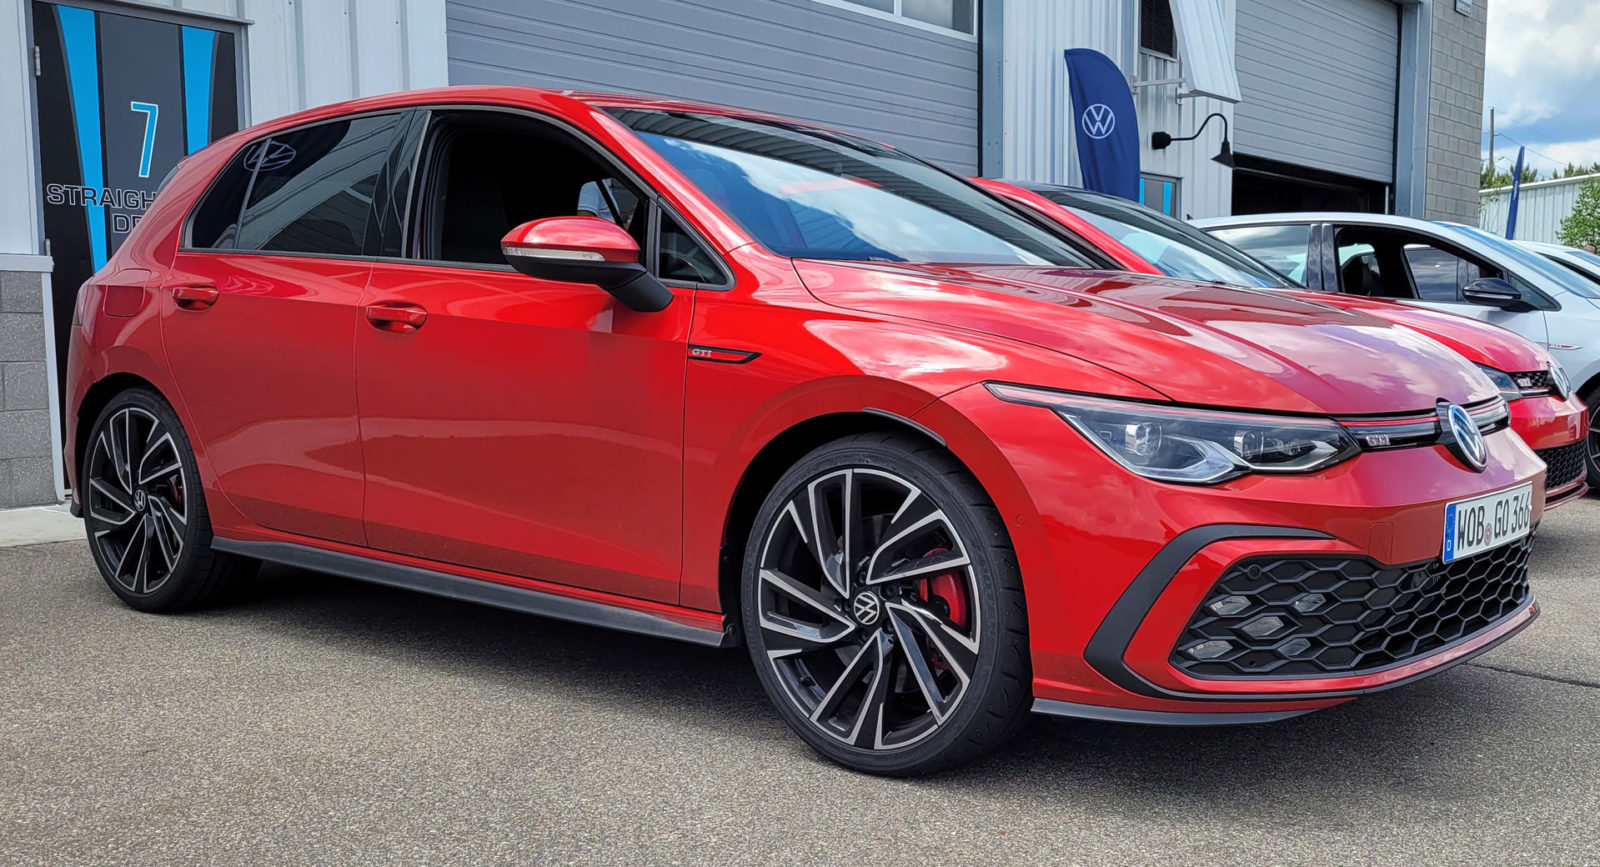 we-drive-the-2022-vw-golf-gti-mk8-and-2021-golf-gti-mk7-back-to-back-to-see-what's-new